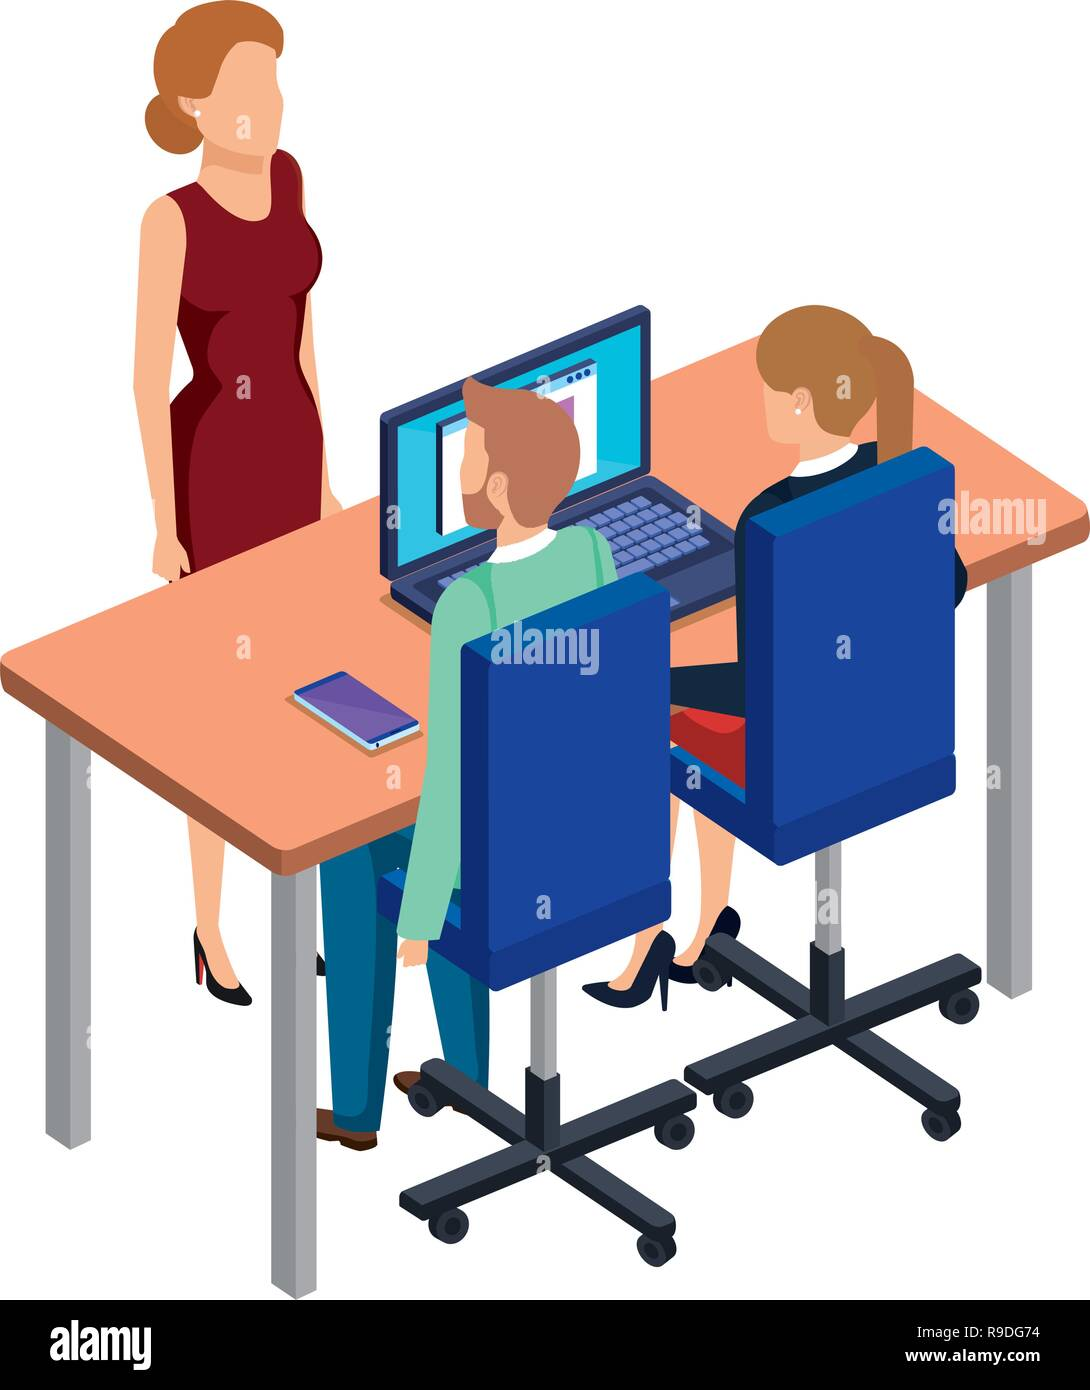 business people in the desk with laptop - Stock Image